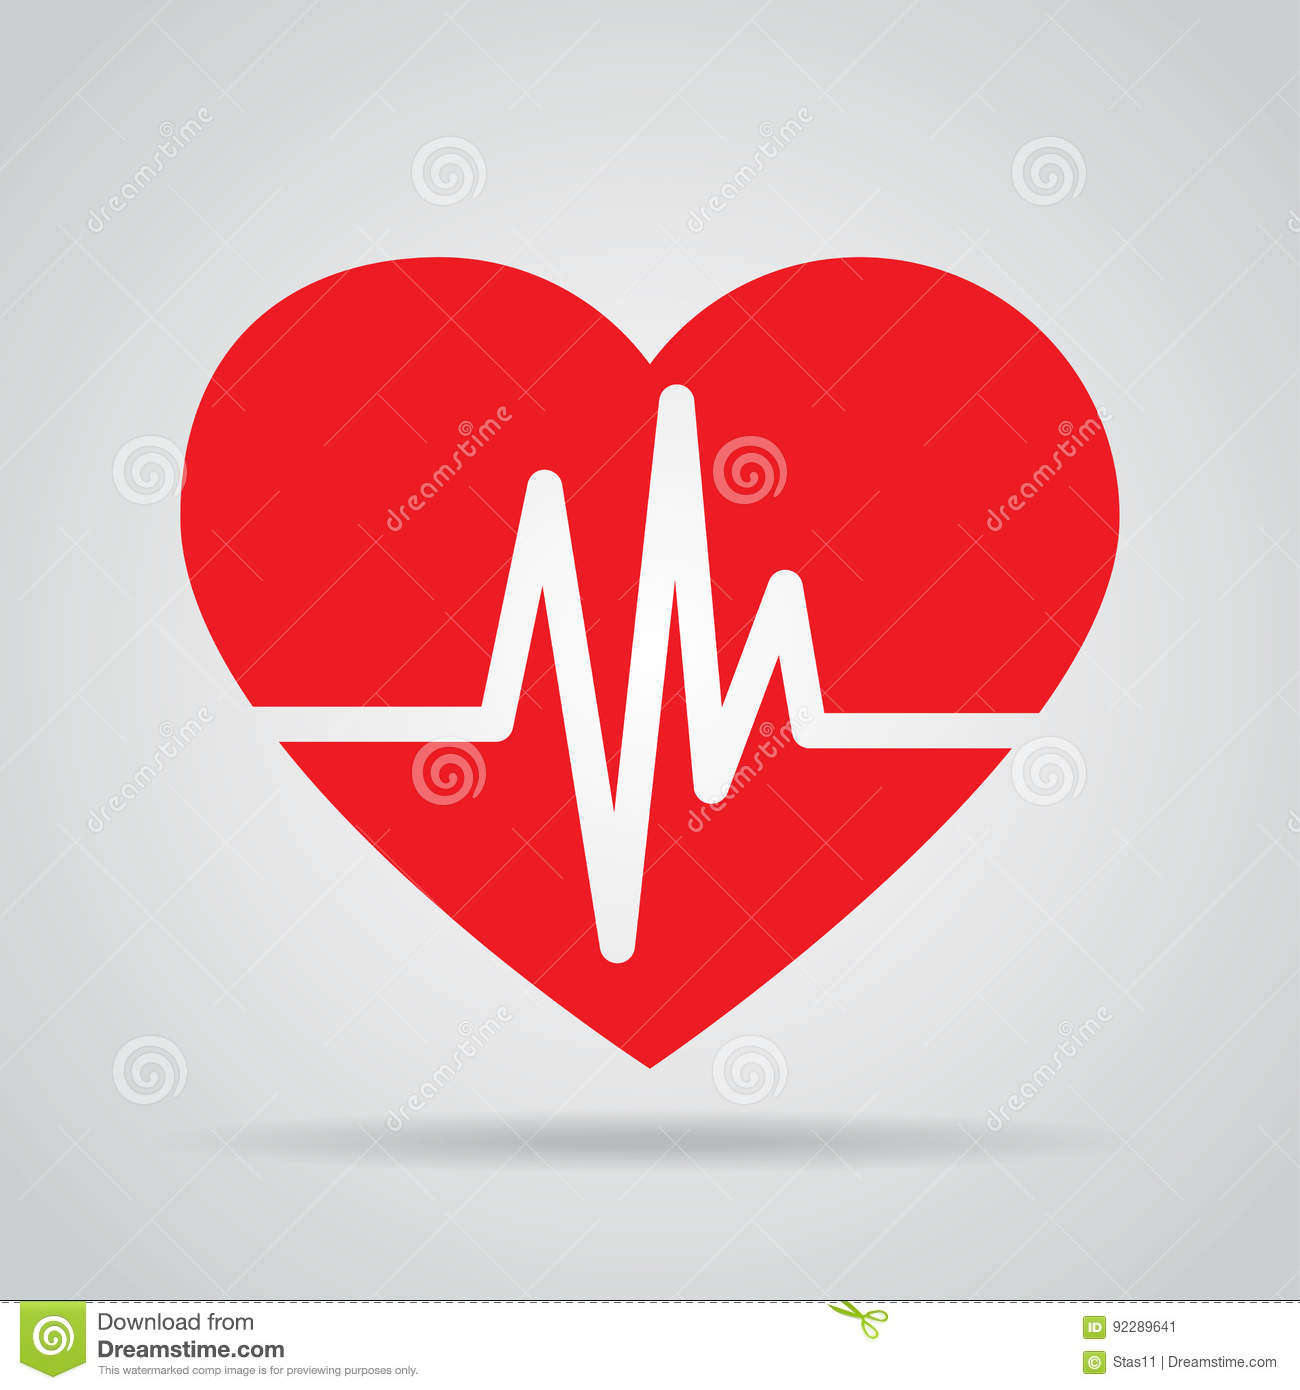 red heart icon with sign heartbeat vector illustration heart in